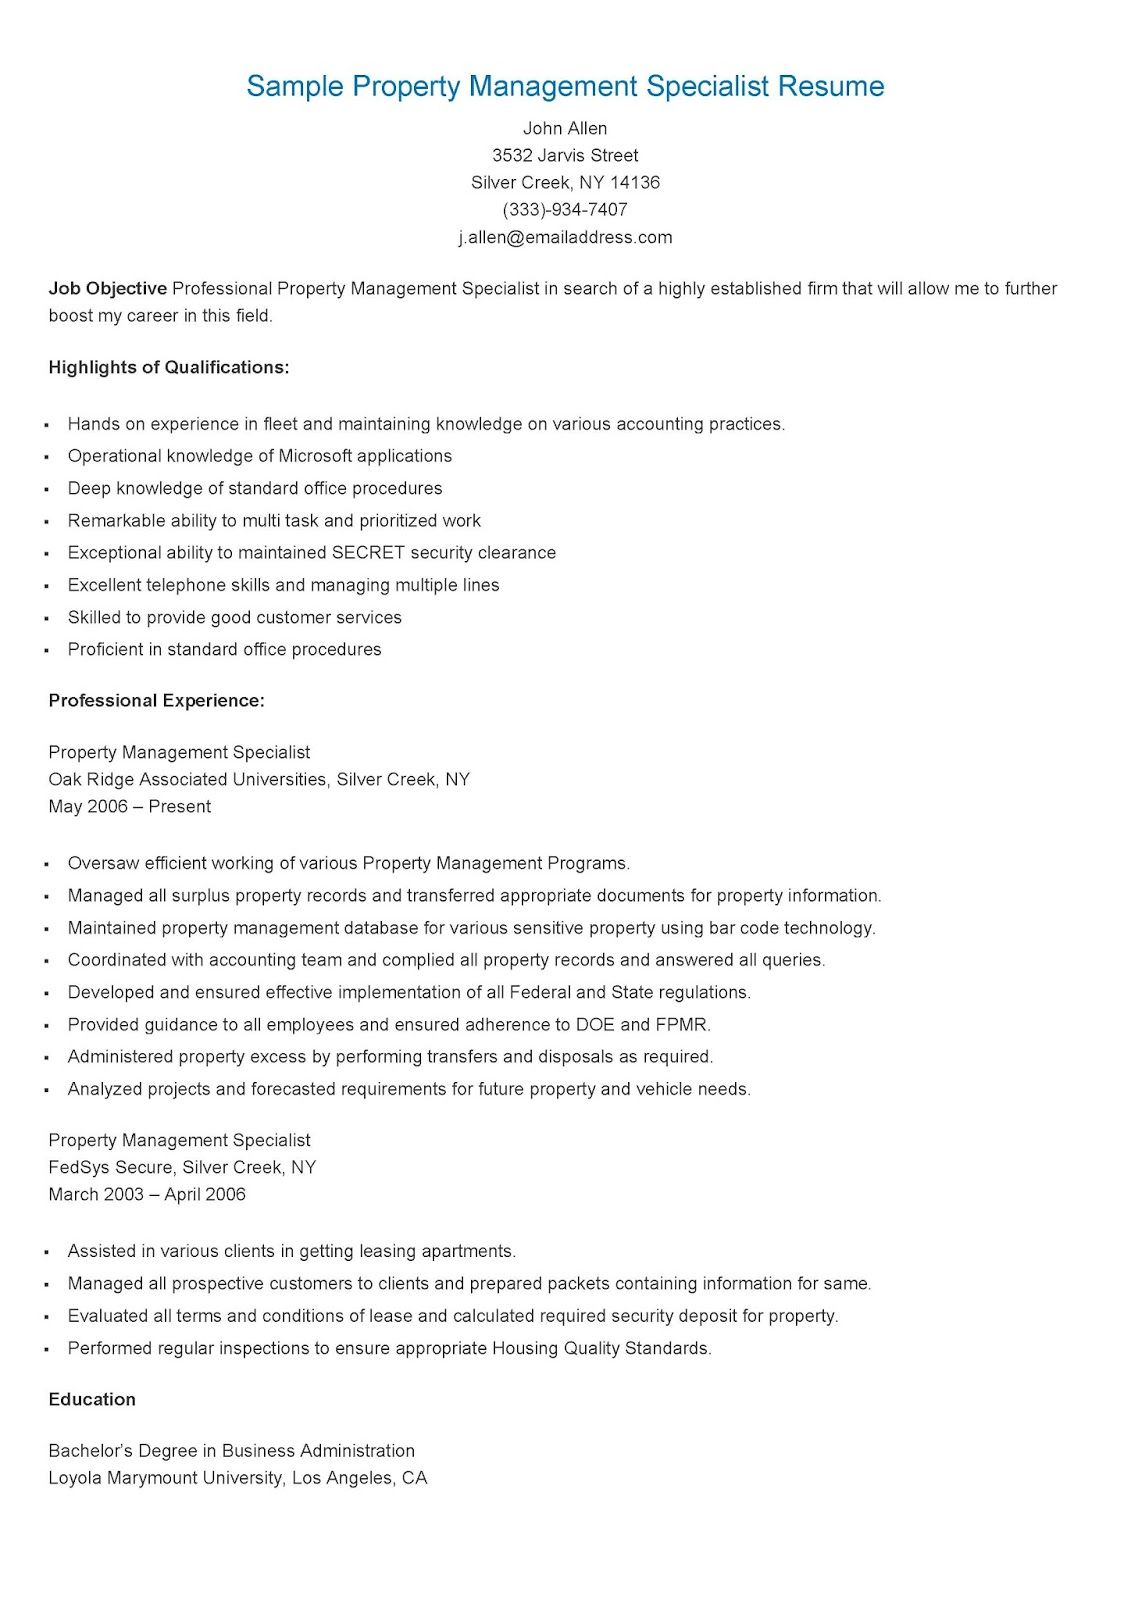 Sample Property Management Specialist Resume | resame | Pinterest ...